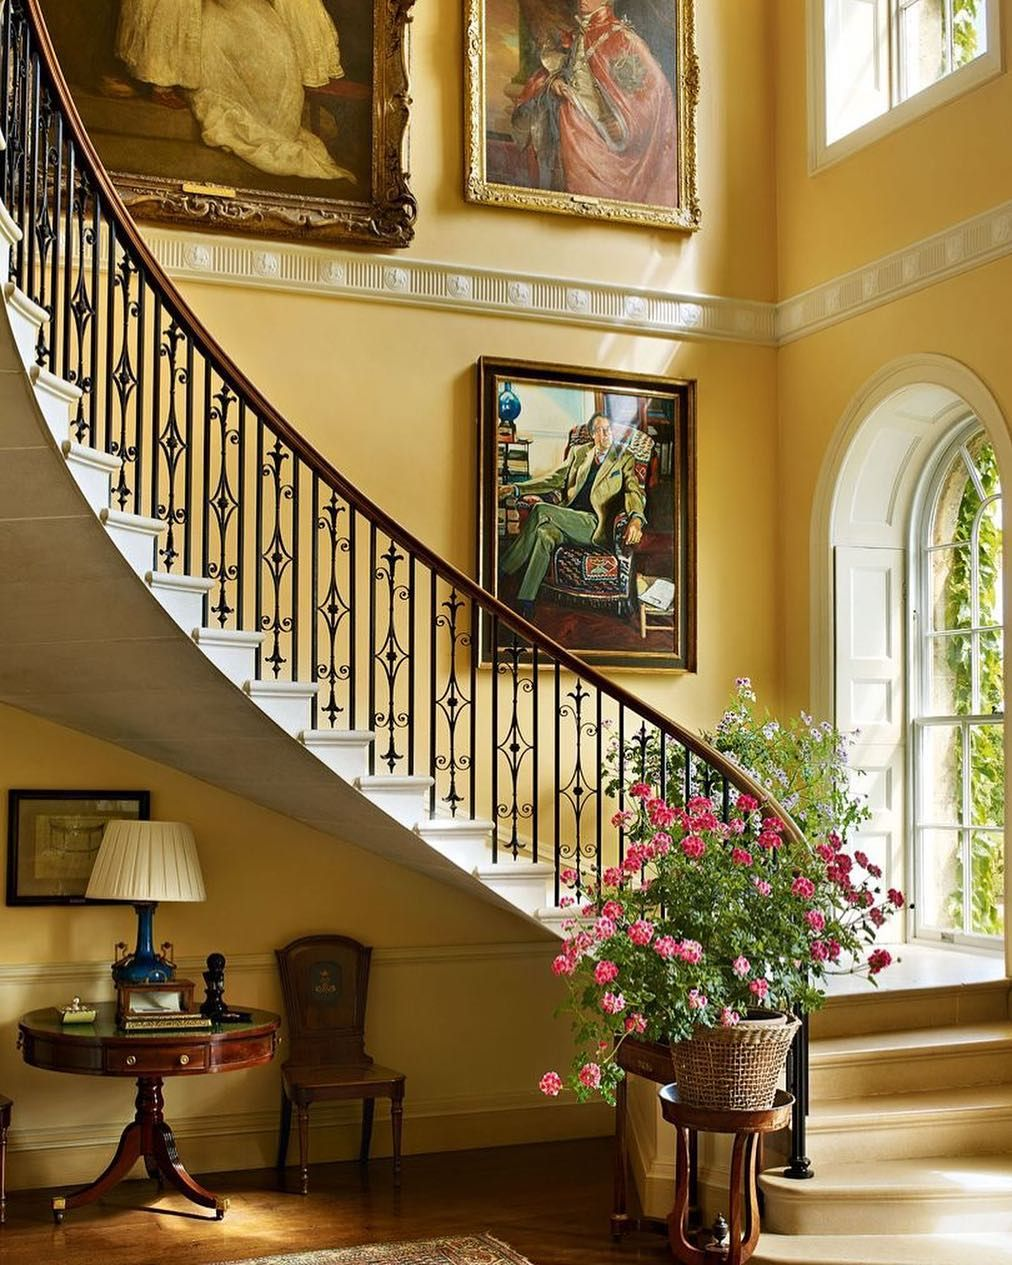 Stair Design Budget And Important Things To Consider: I Won't Complain About The Gloomy Weather We've Been